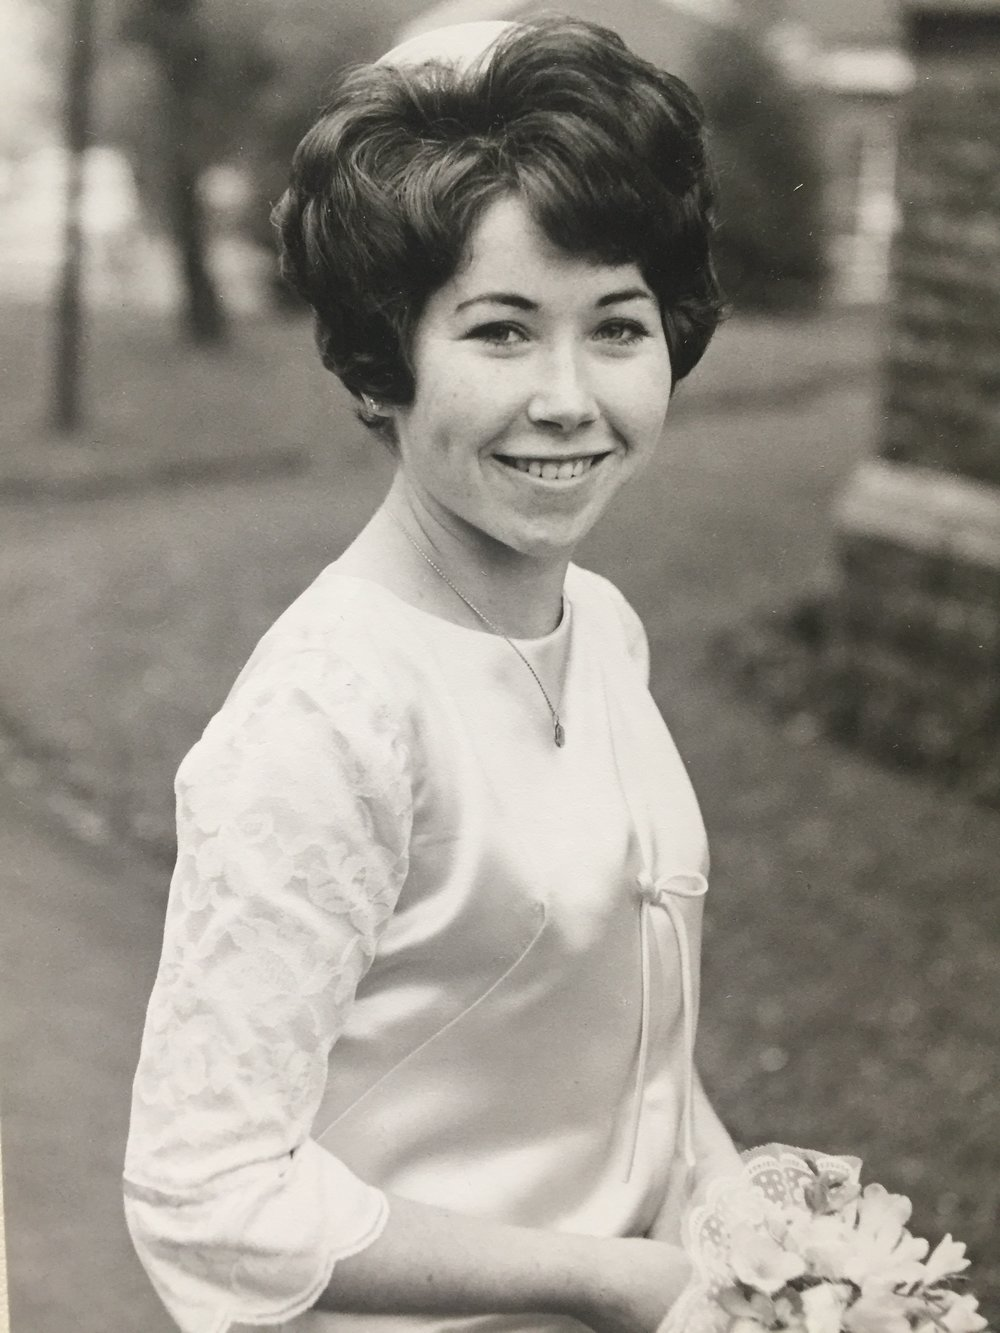 A young woman in the 1960's.